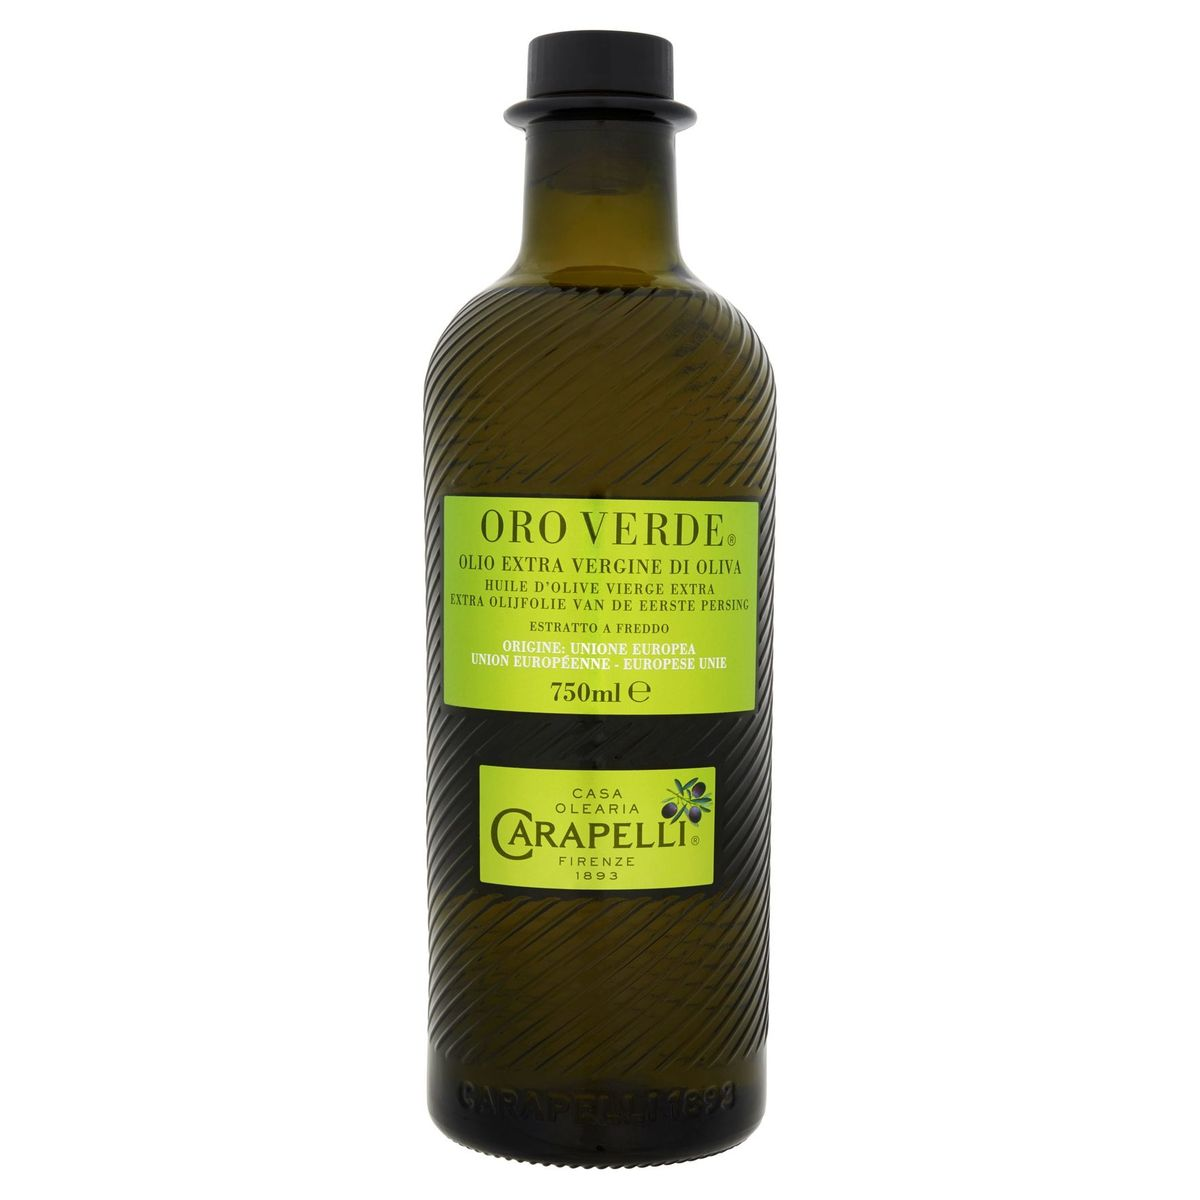 Carapelli Oro Verde Huile d'Olive Vierge Extra 750 ml